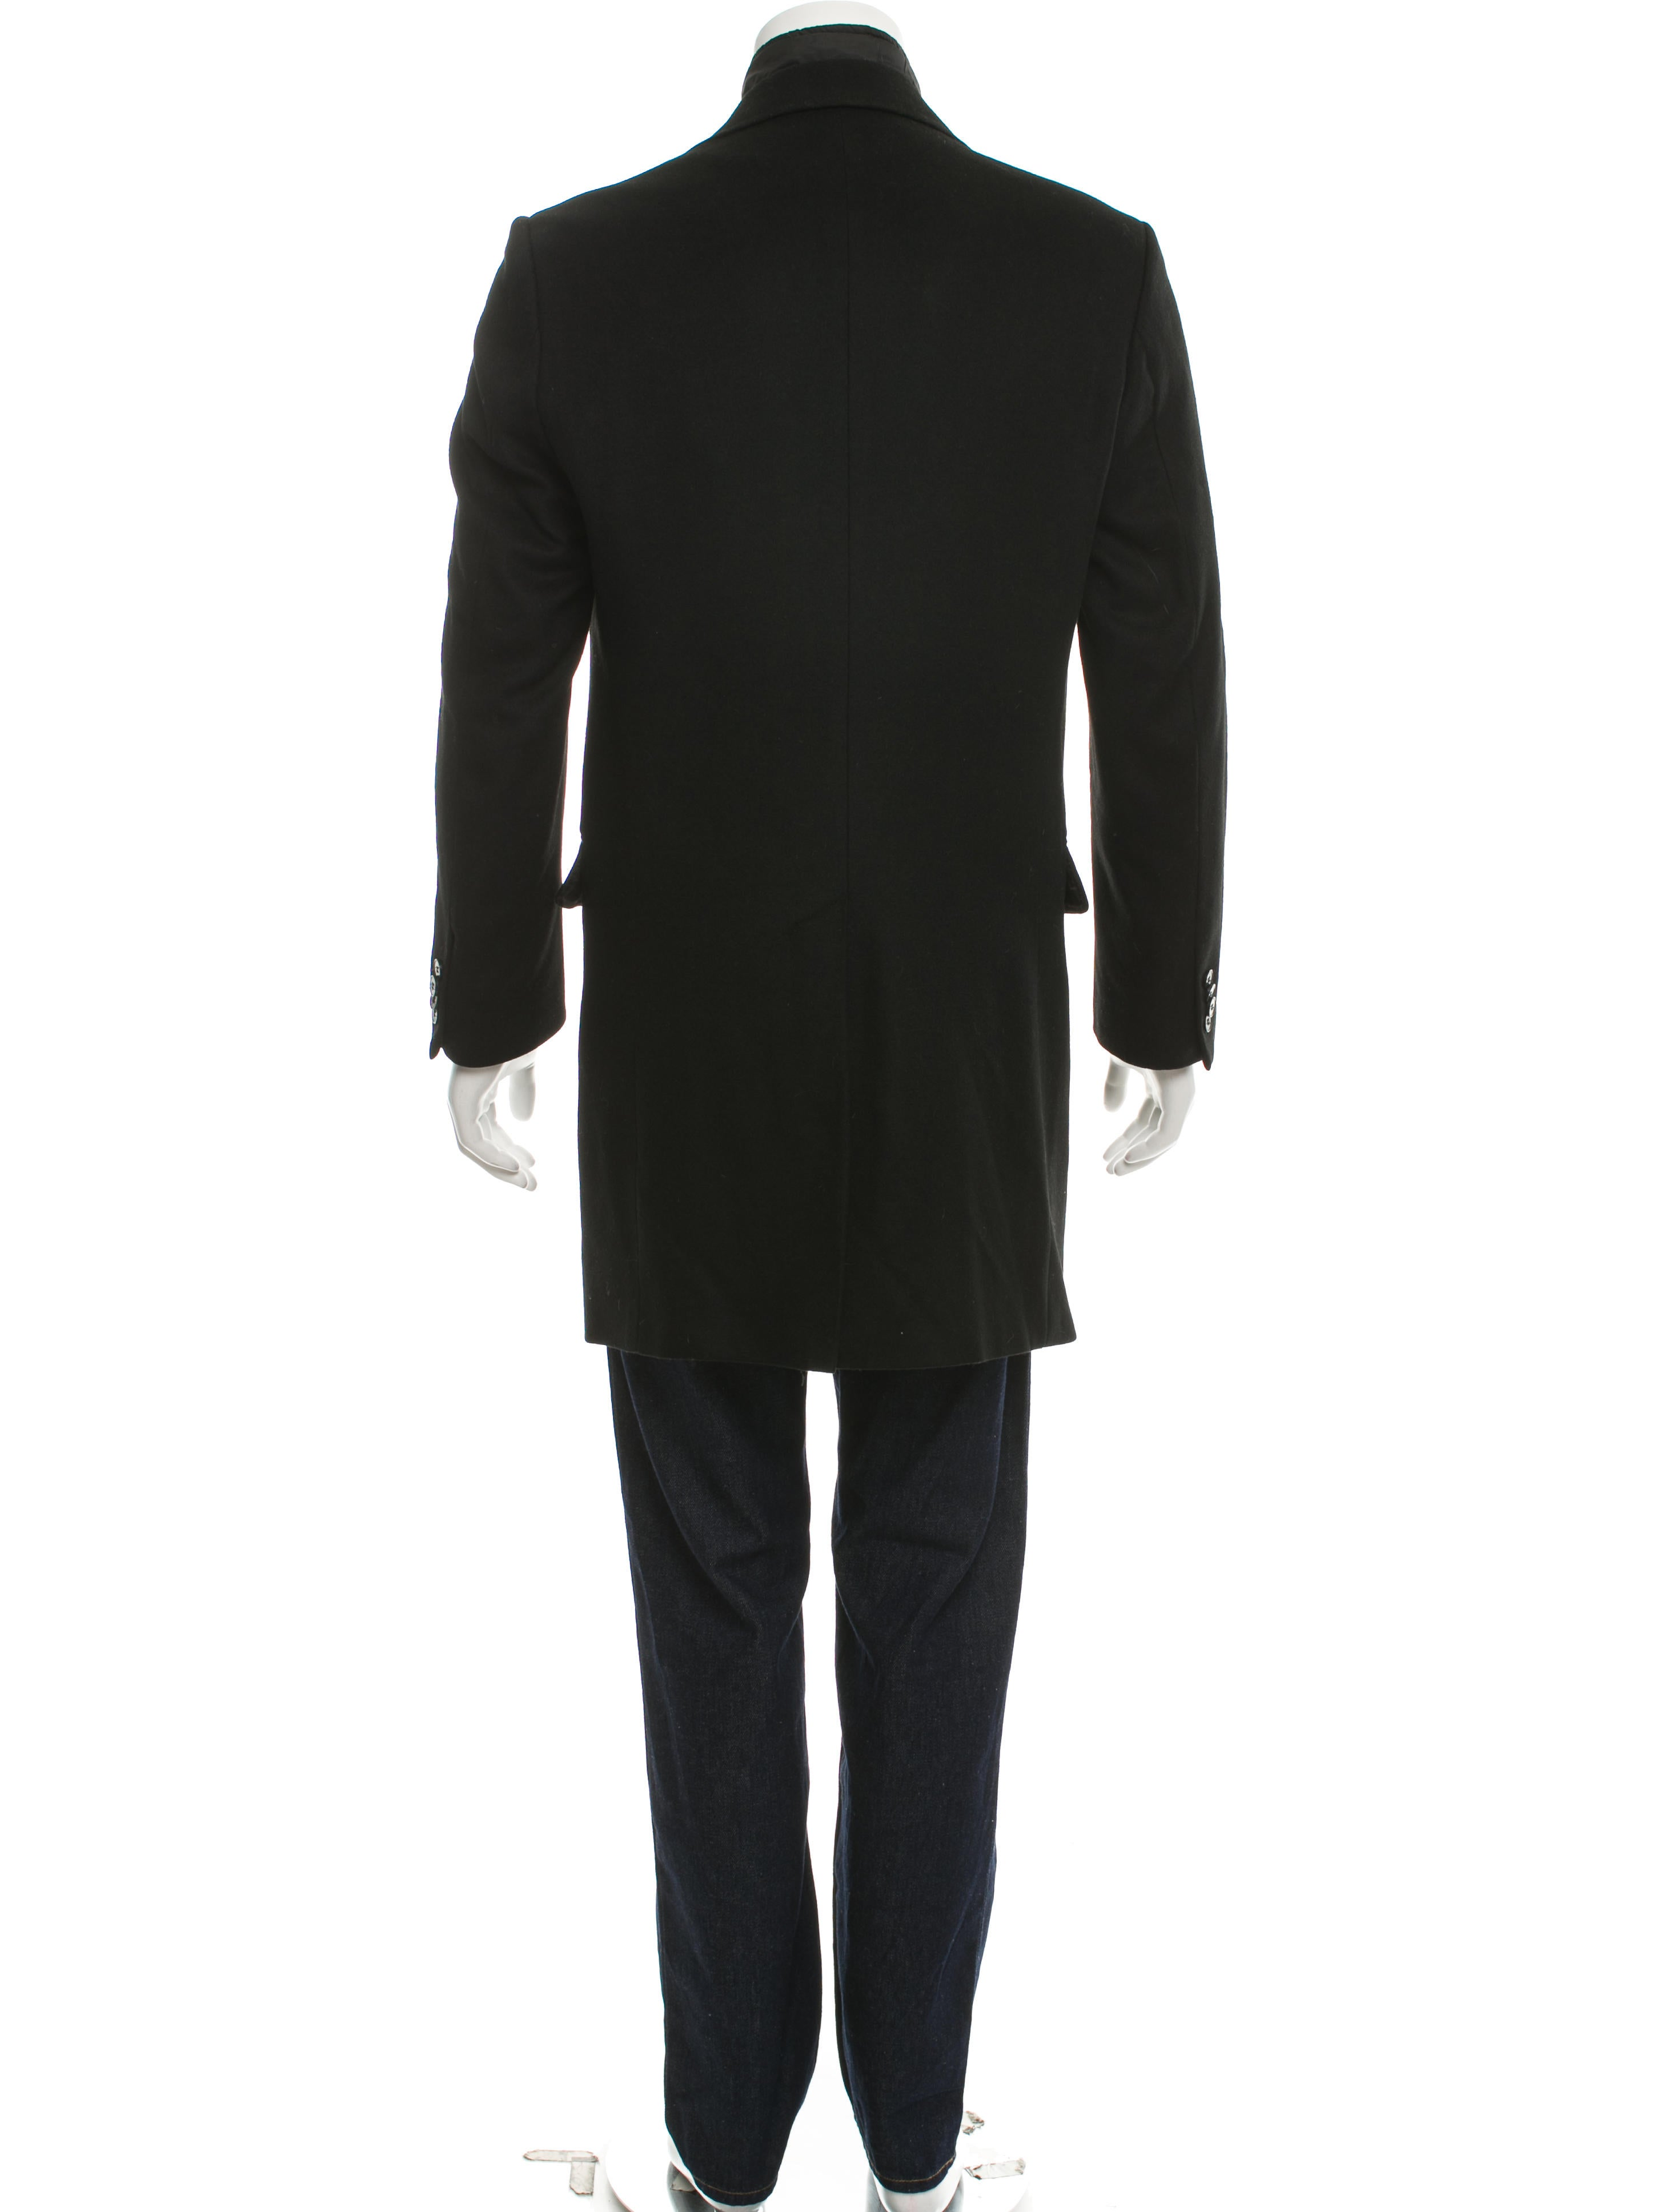 Valentino Lightweight Wool Coat - Clothing - VAL50622 | The RealReal